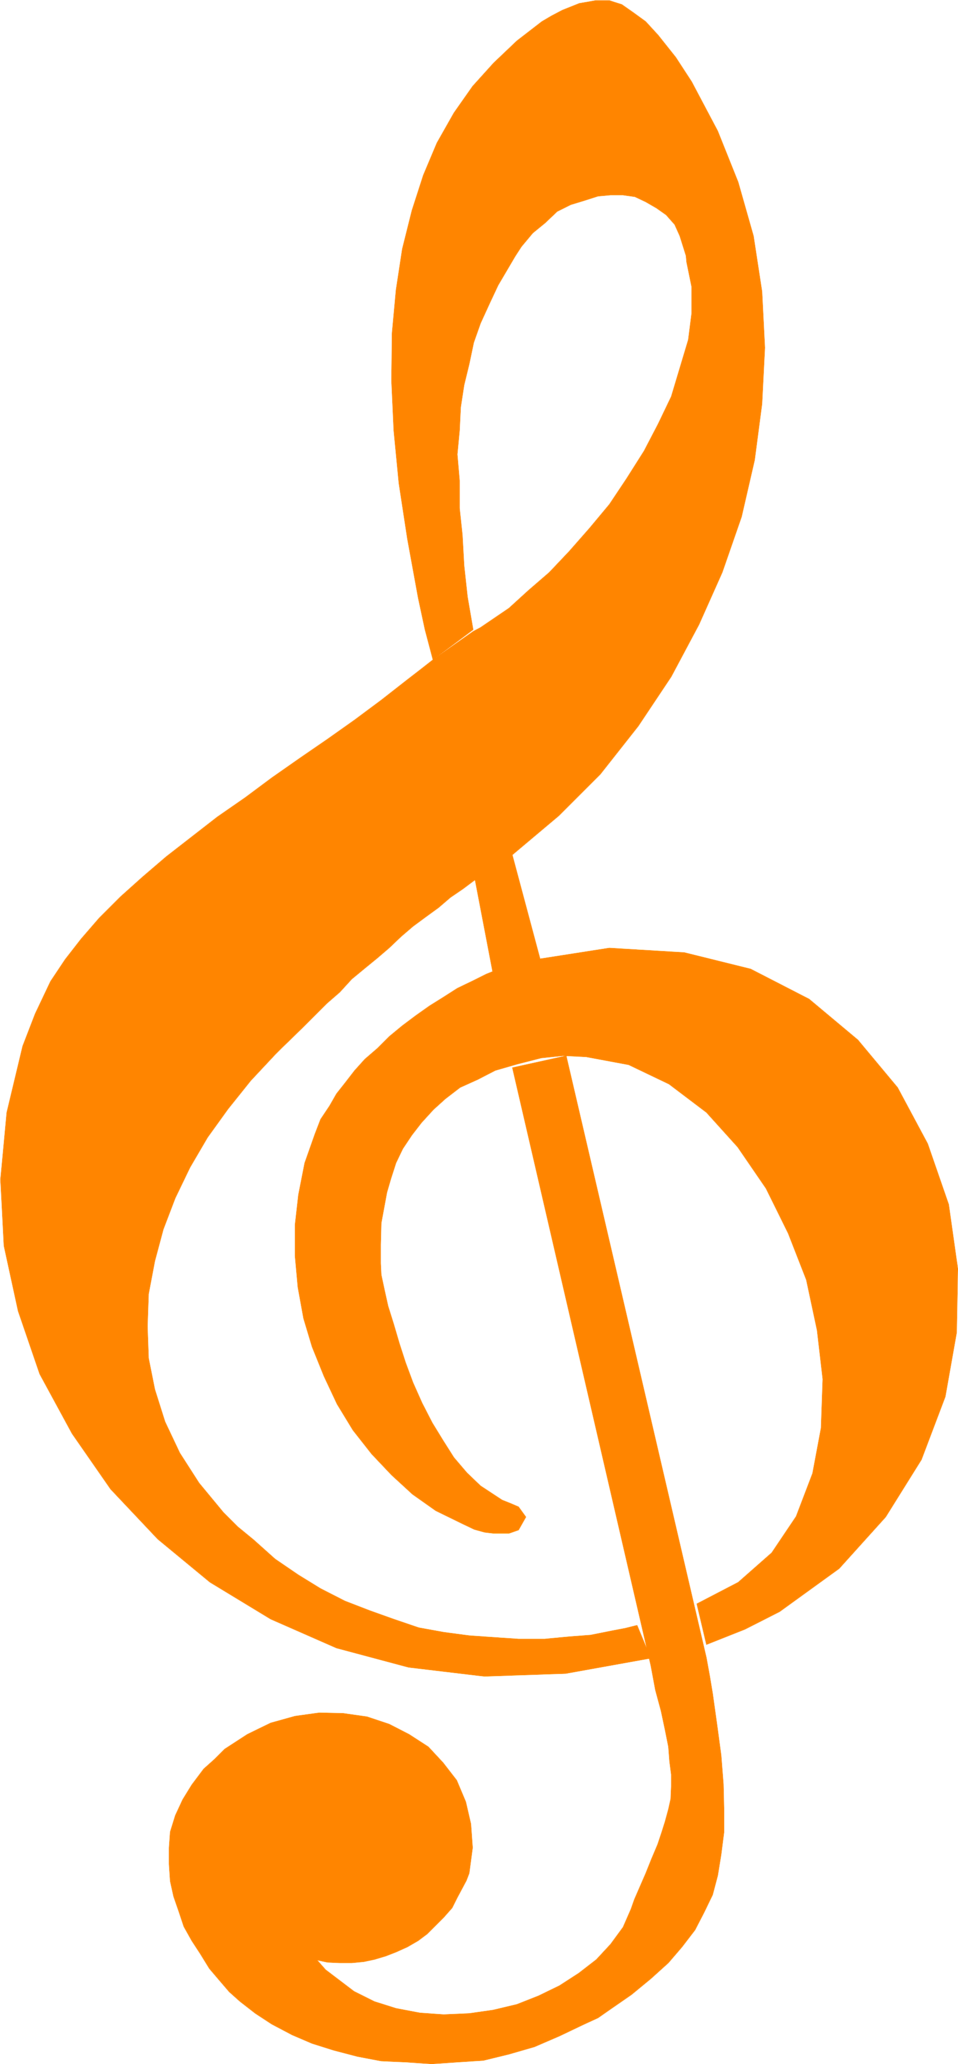 Clarinet vector treble clef. Free stock photo illustration